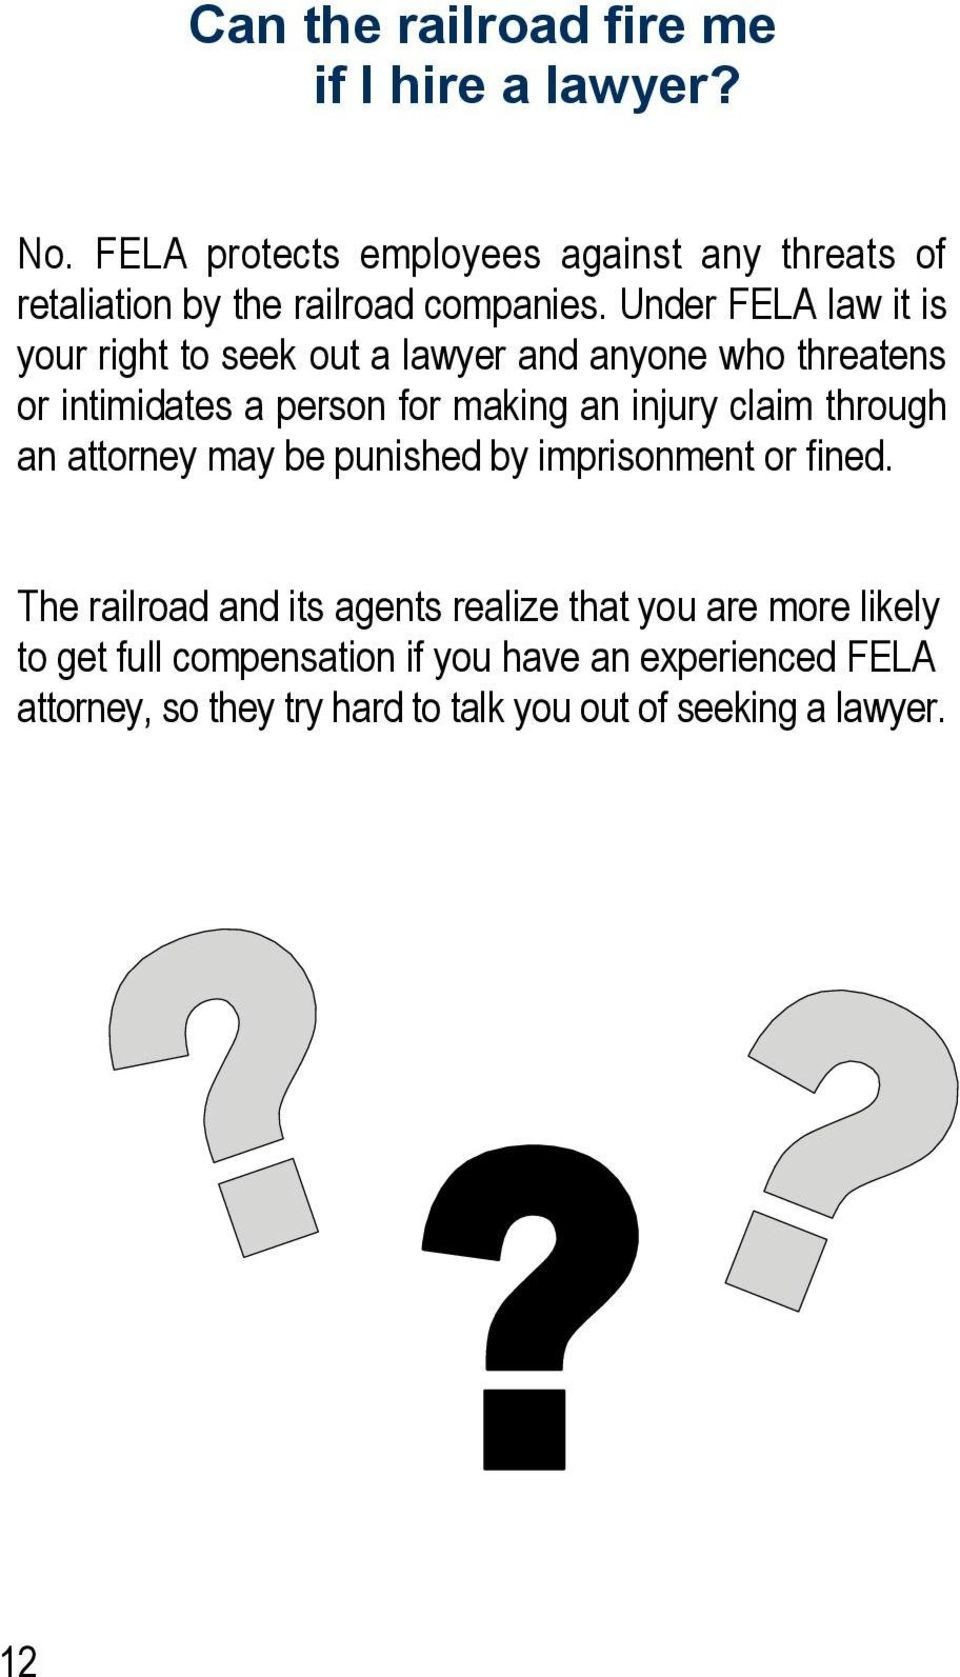 Under FELA law it is your right to seek out a lawyer and anyone who threatens or intimidates a person for making an injury